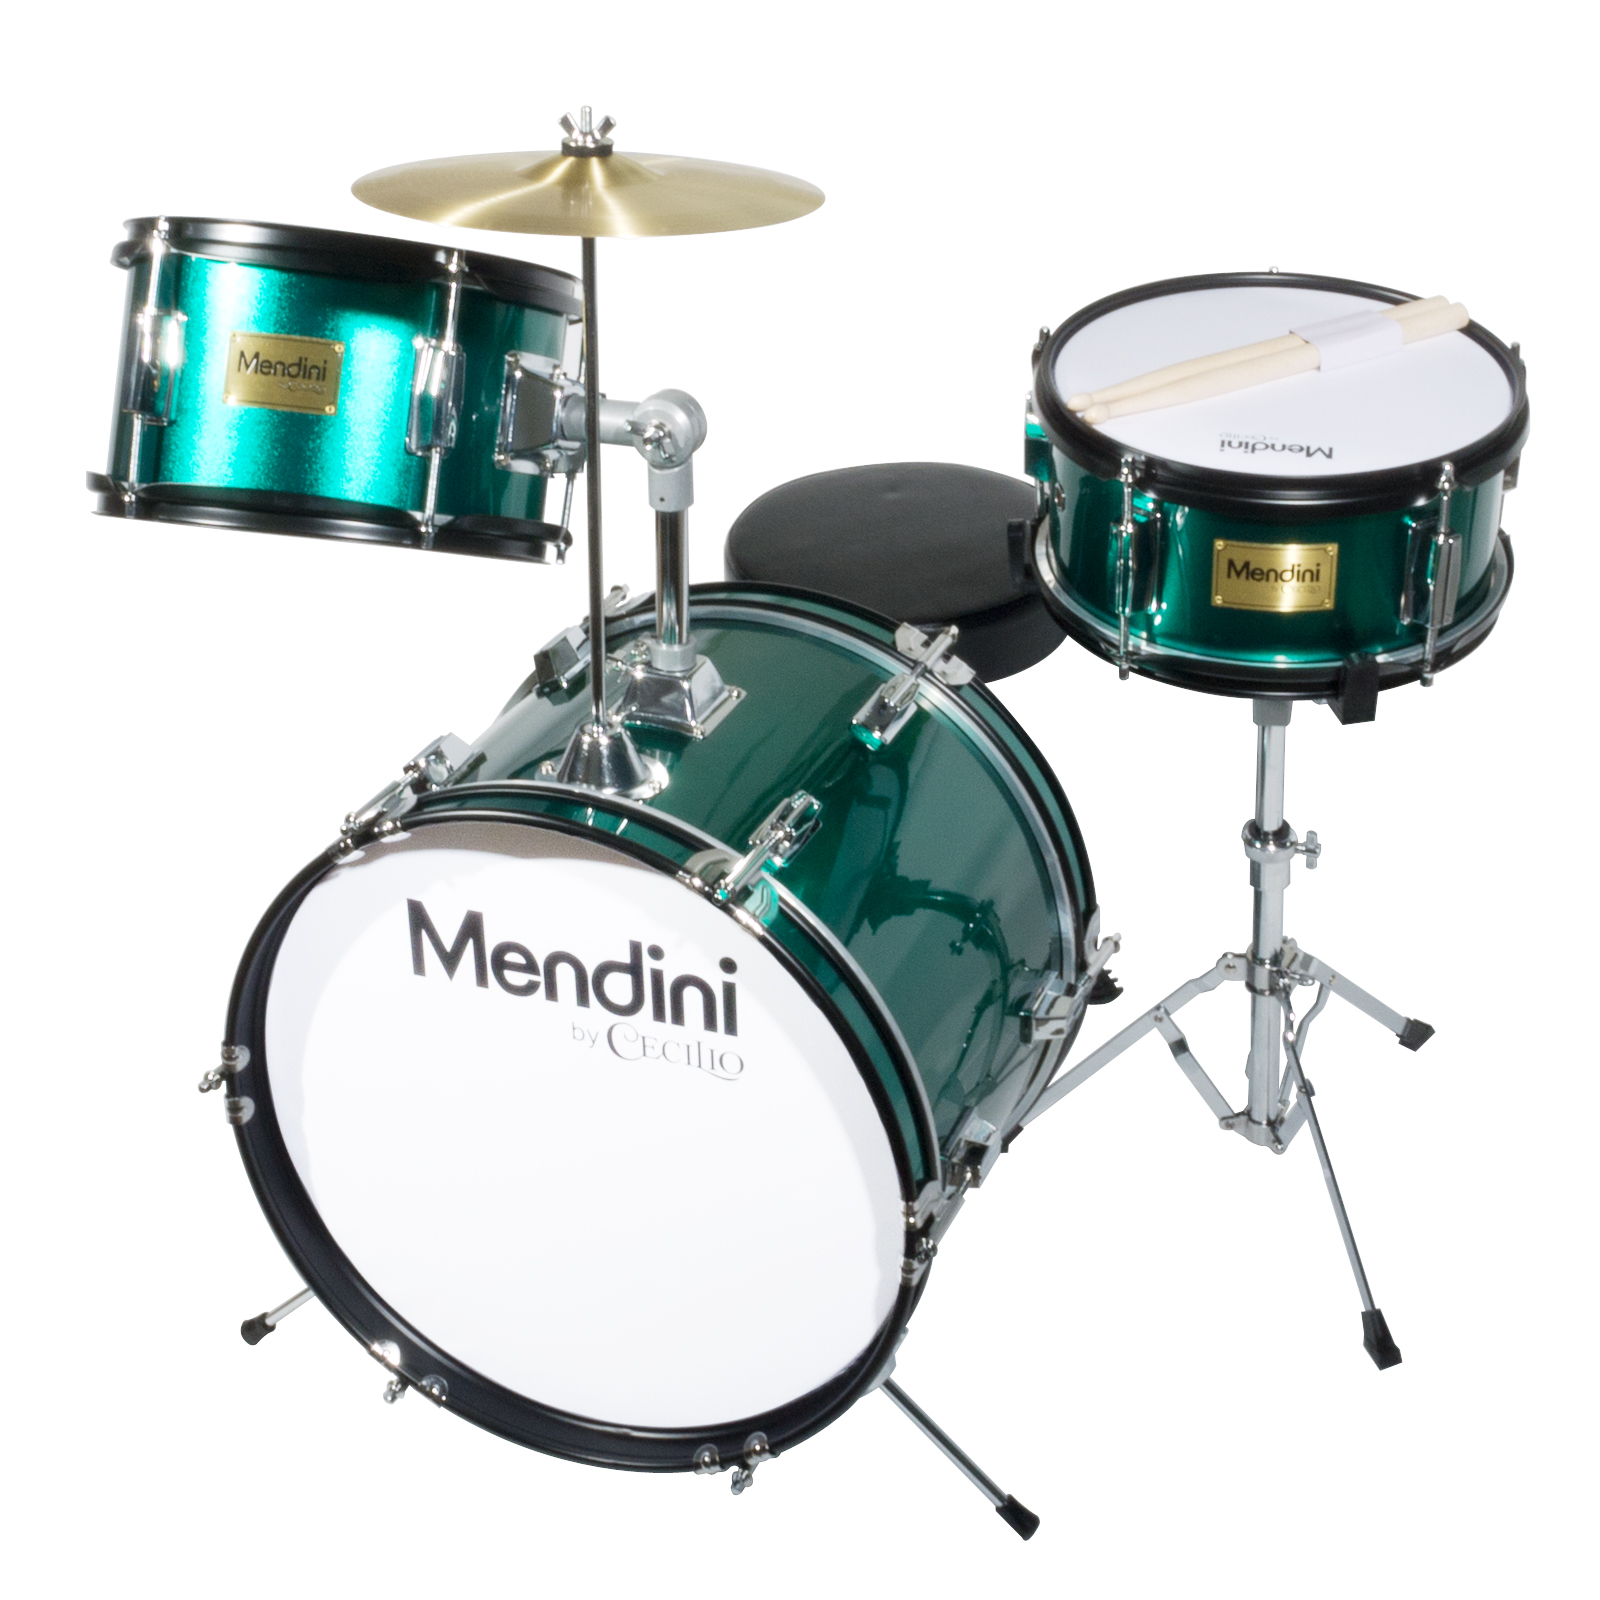 """Mendini by Cecilio 16"""" 3-Piece Kids / Junior Drum Set with Adjustable Throne, Cymbal, Pedal & Drumsticks, Metallic Green, MJDS-3-GN"""